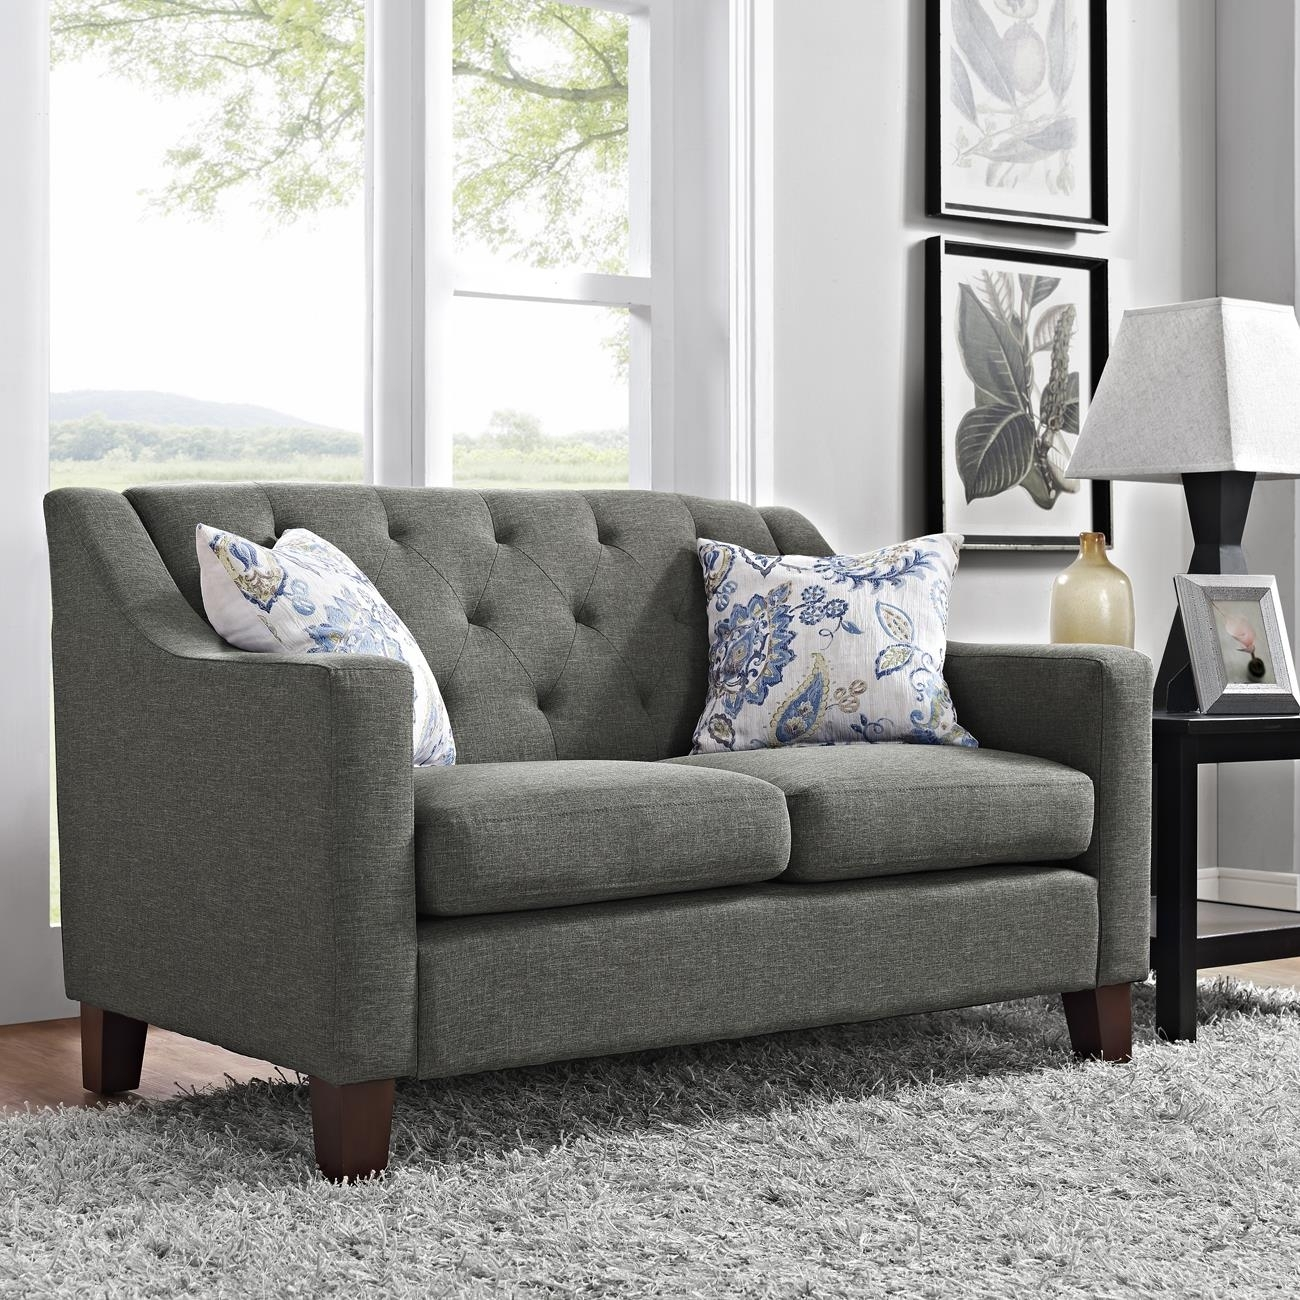 Bedroom Couch Ikea Ideas — Cabinets, Beds, Sofas And Morecabinets With Bedroom Sofas (View 8 of 10)